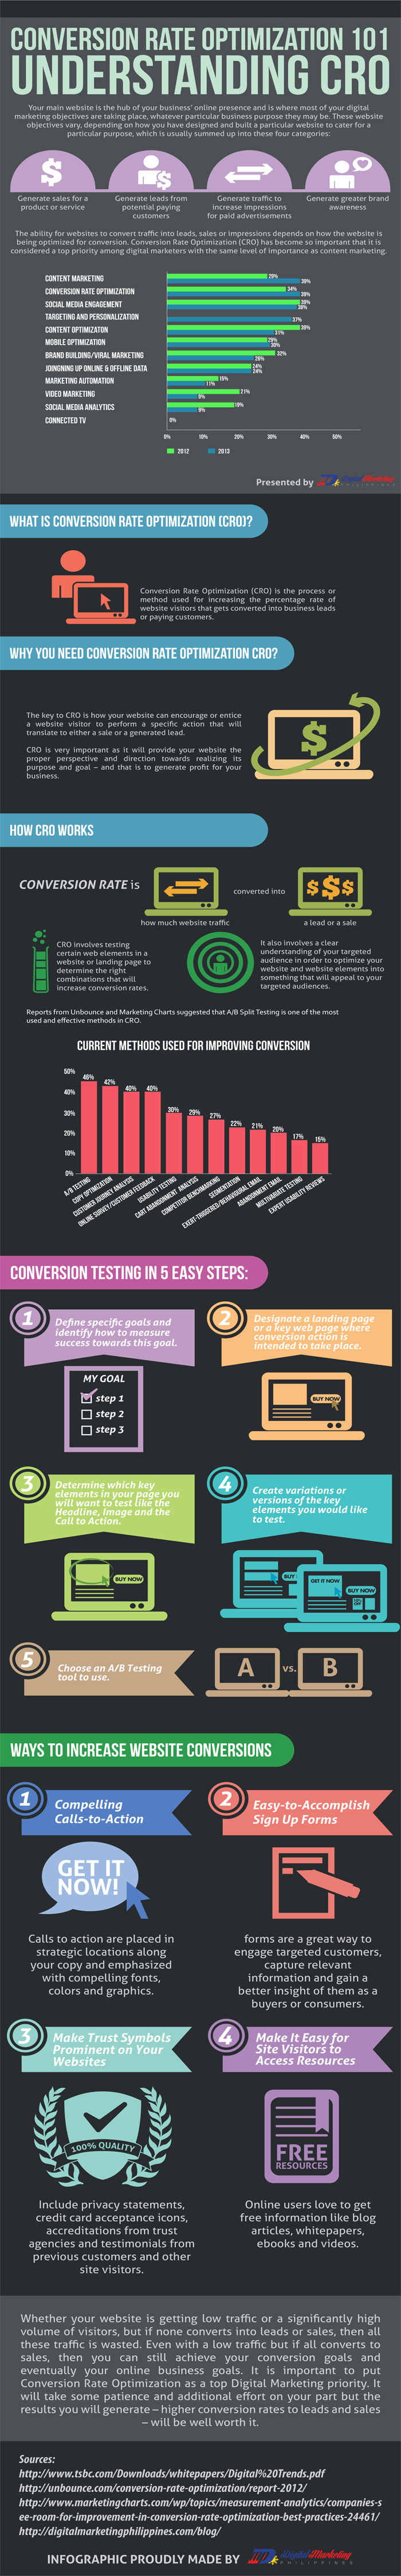 Conversion Rate Optimisation [Infographic]